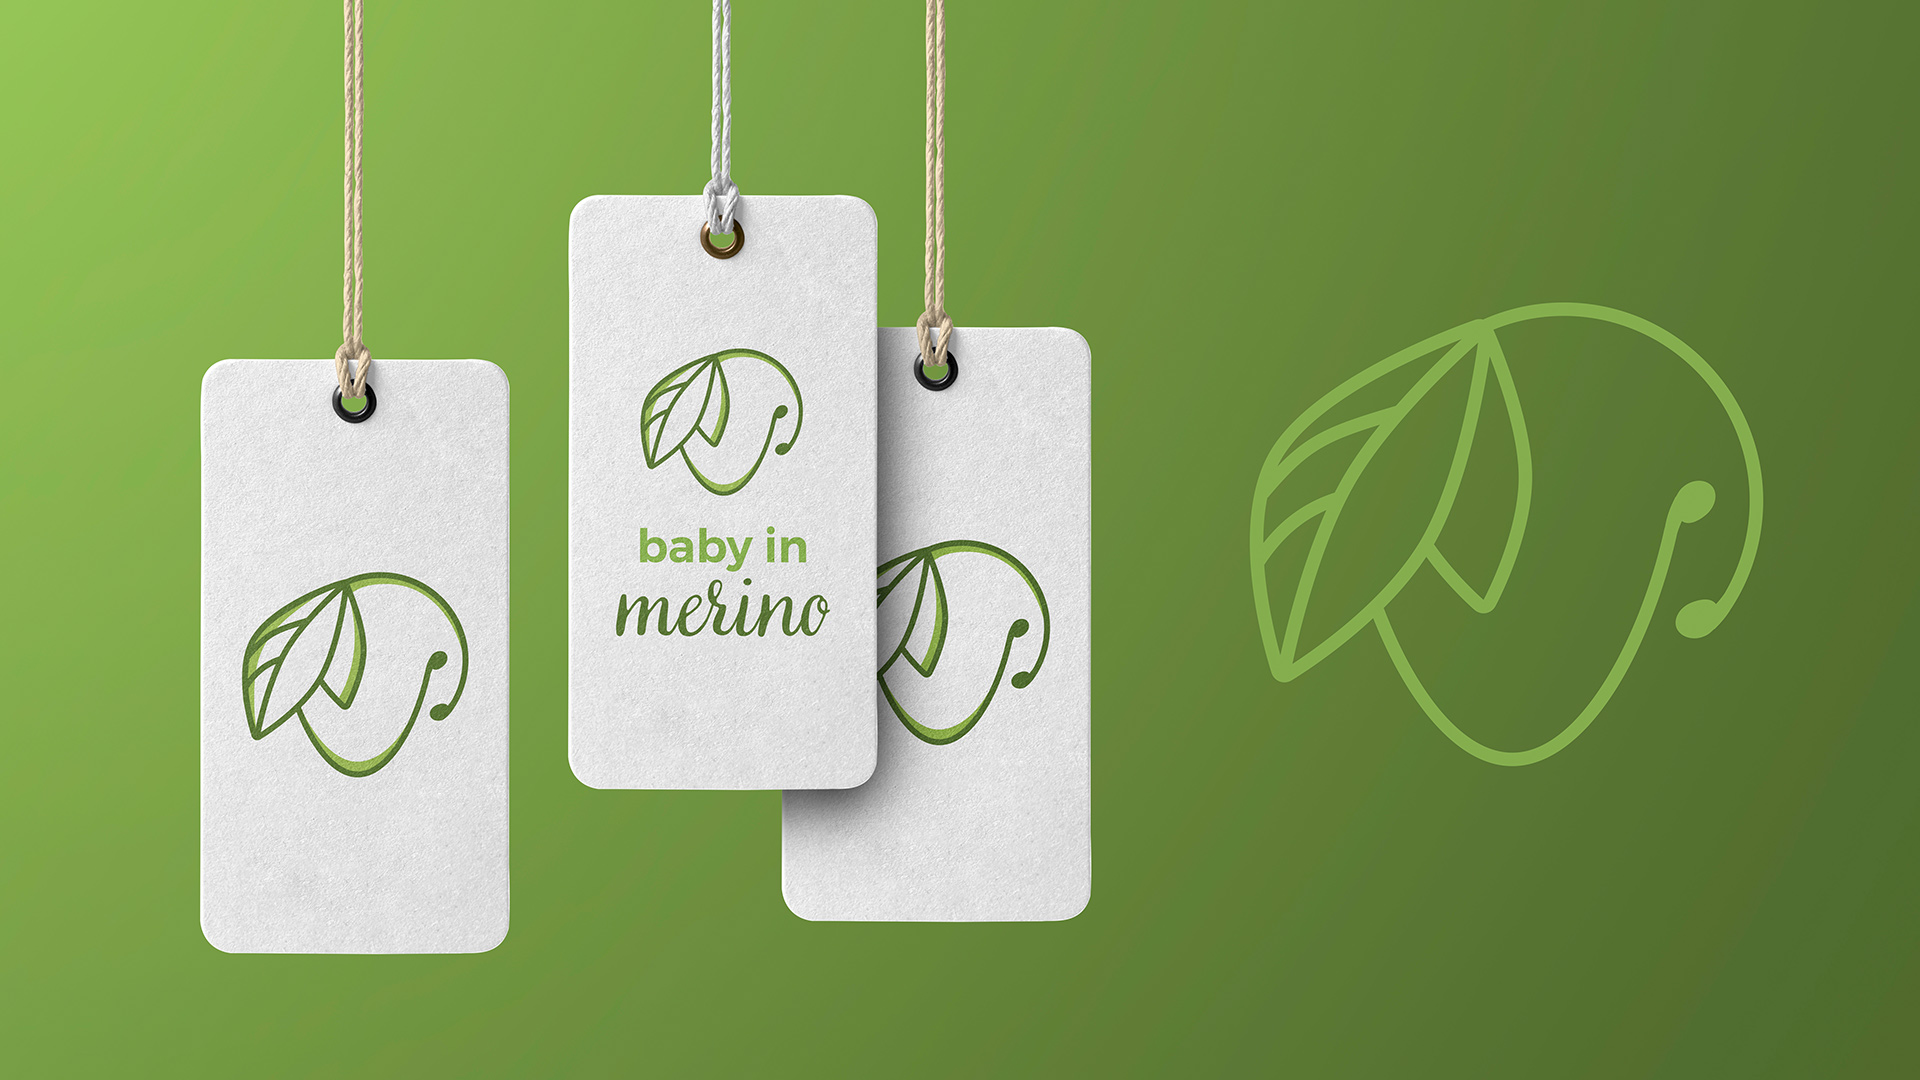 minimalistic logo for baby clothing brand